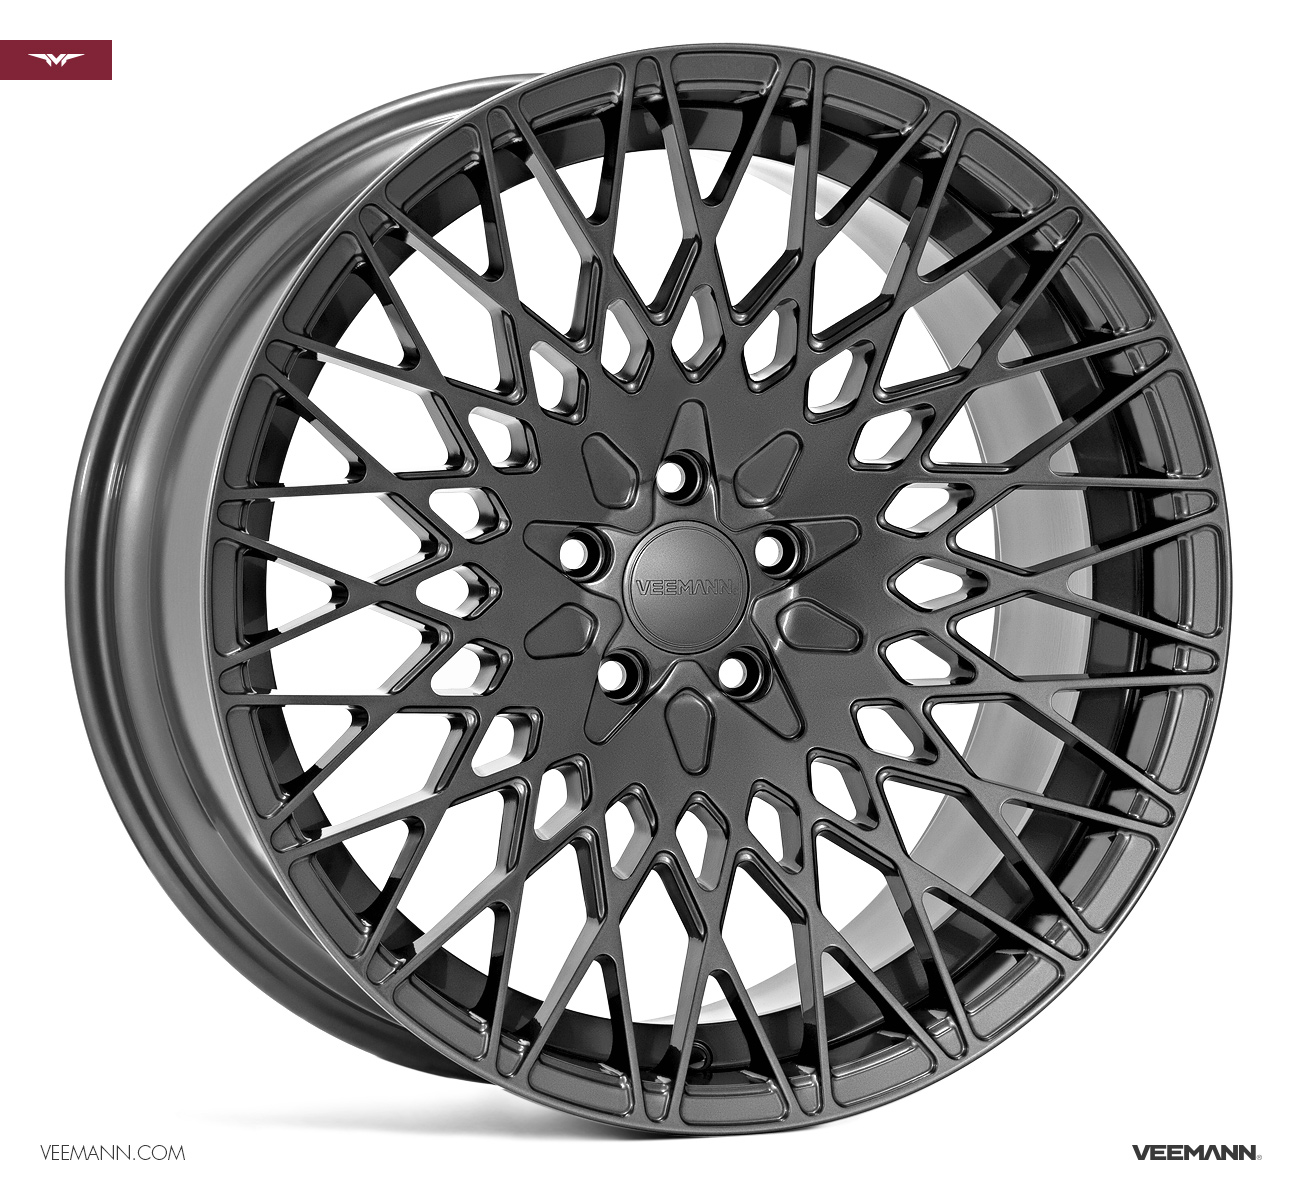 "NEW 19"" VEEMANN VC540 ALLOYS IN GLOSS GRAPHITE WITH WIDER 9.5"" REARS"